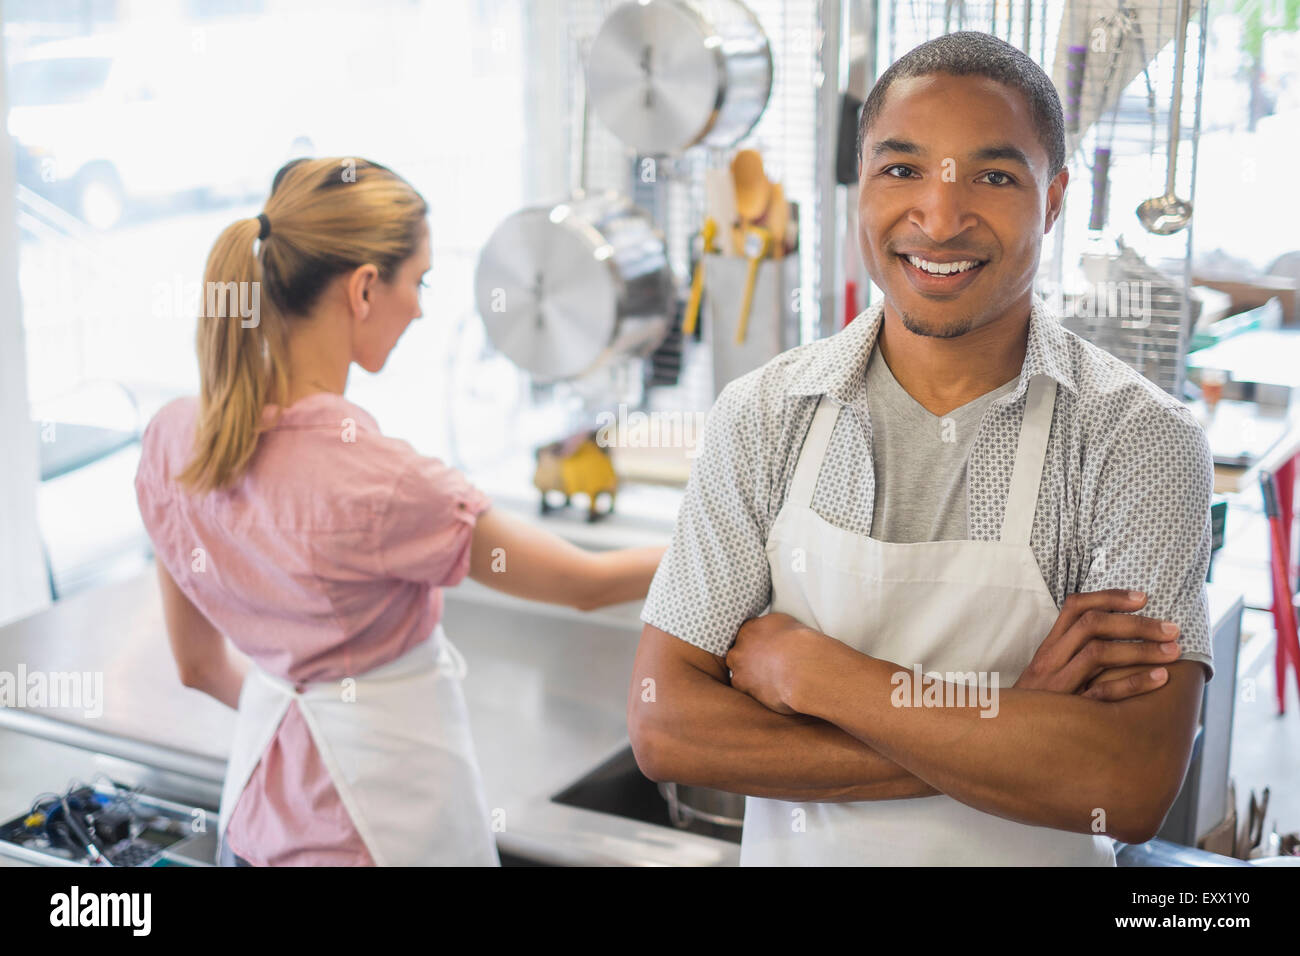 Portrait of bakery owner - Stock Image